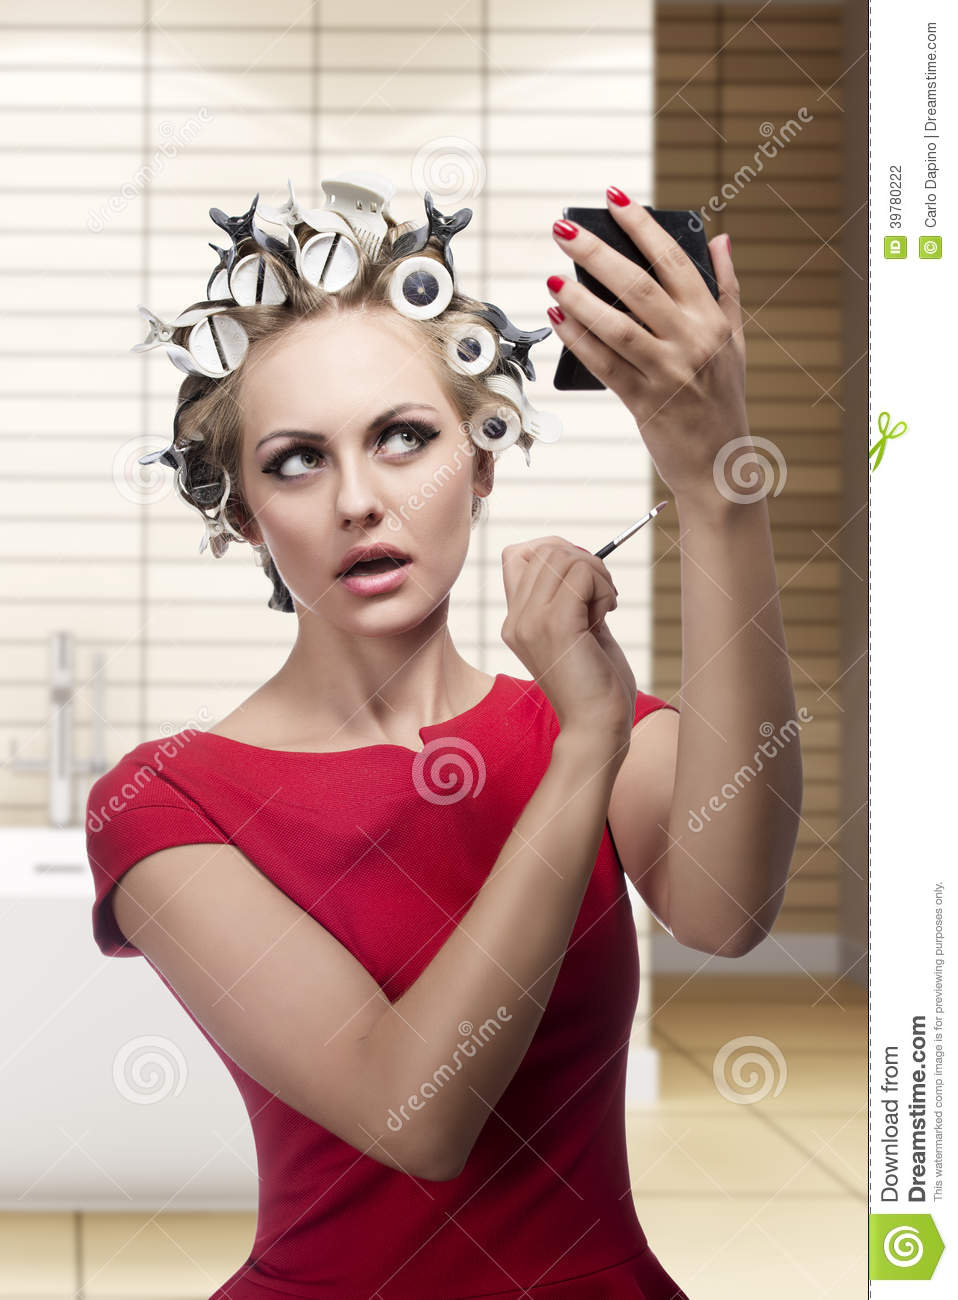 Funny Woman With Hair Rollers Stock Photo - Image: 39780222